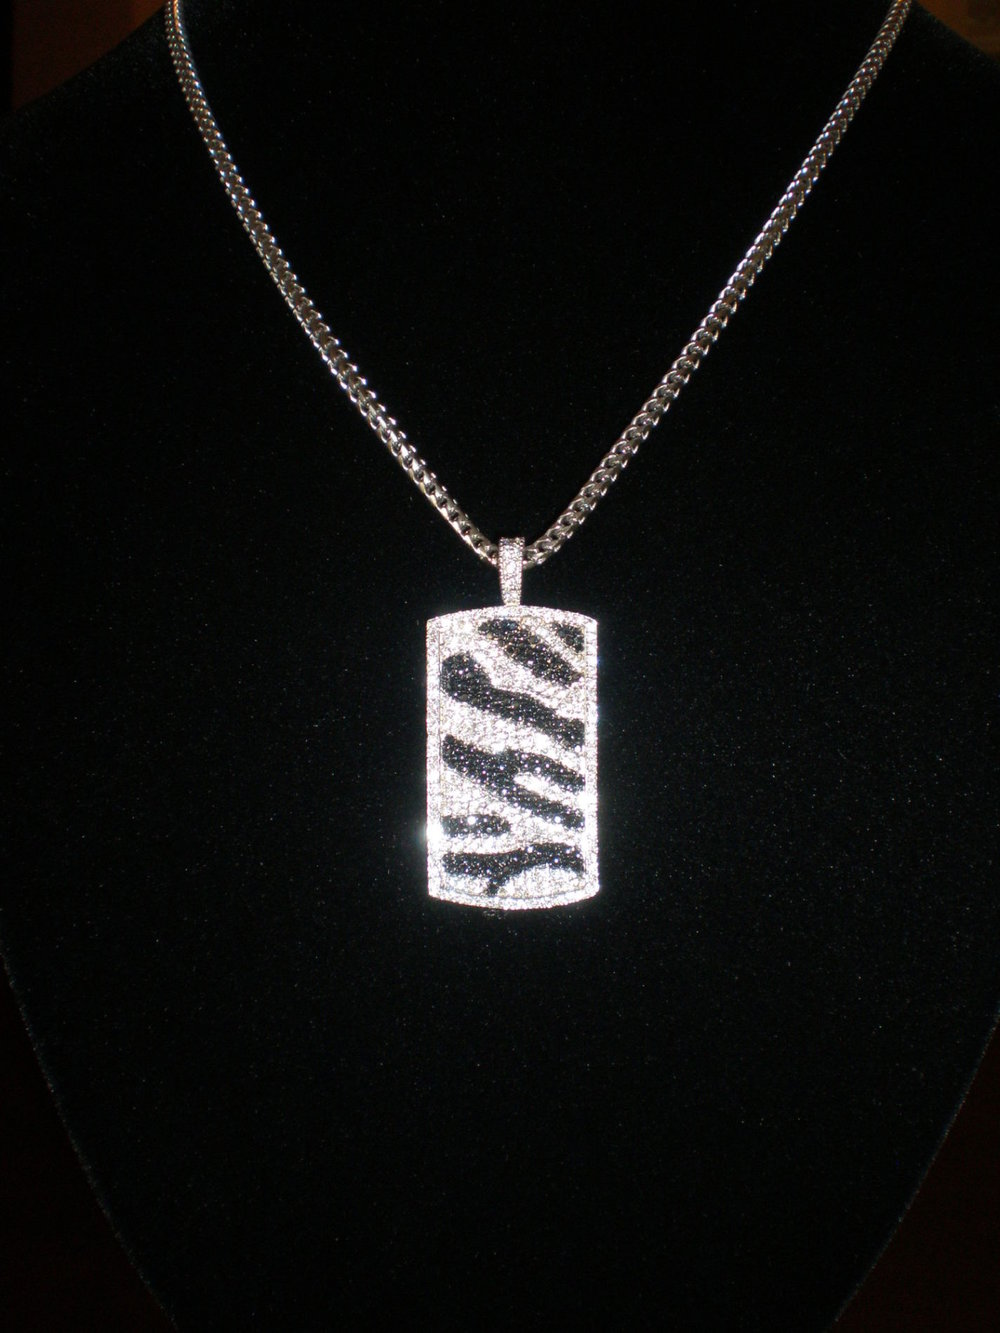 Zebra-Pendant-with-diamond-cut-gold-chain1.jpg